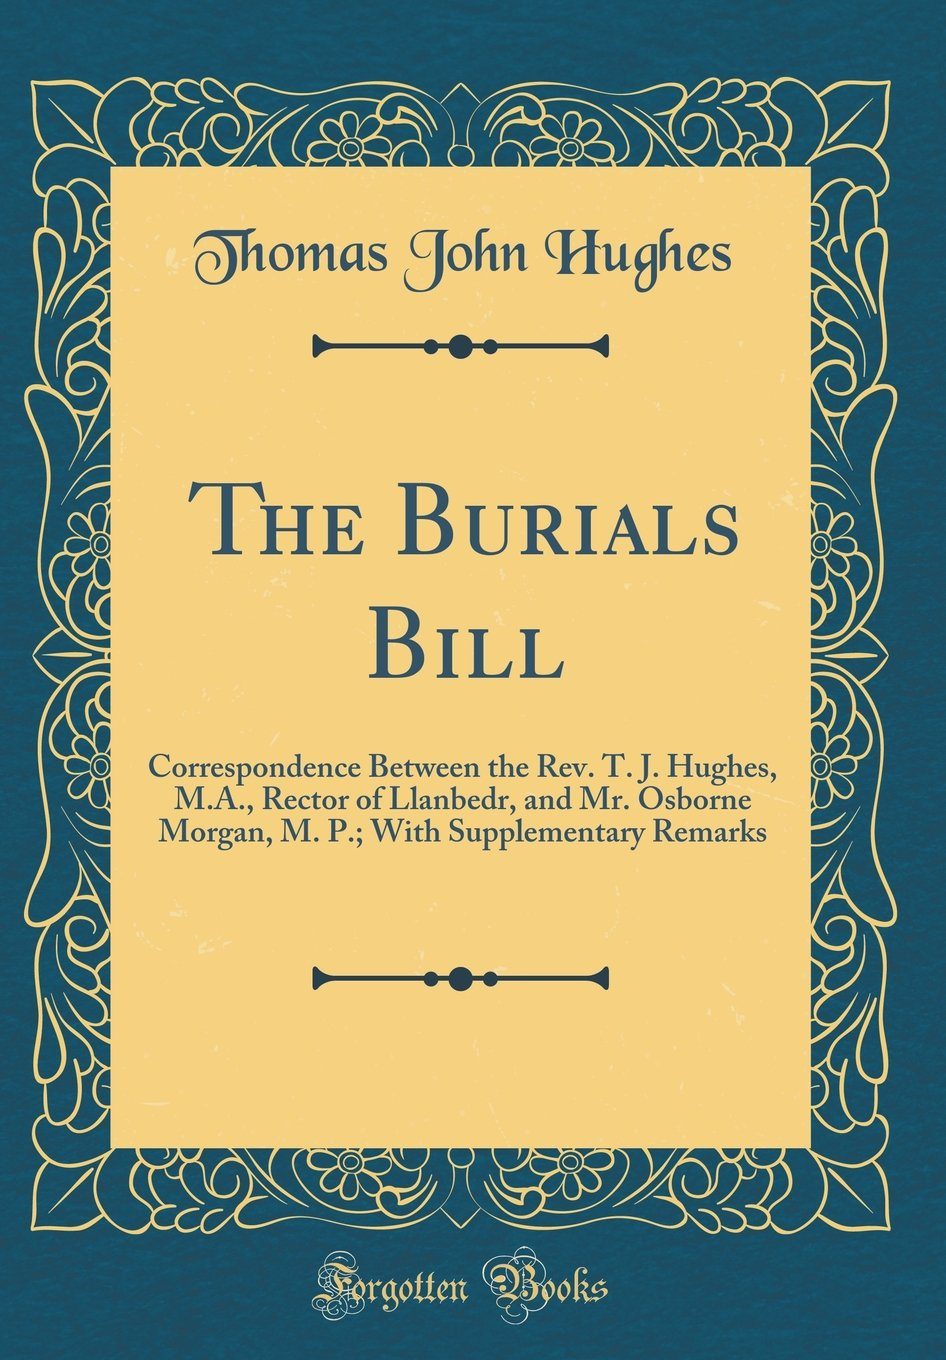 The Burials Bill: Correspondence Between the Rev. T. J. Hughes, M.A, Rector of Llanbedr, and Mr. Osborne Morgan, M. P; With Supplementary Remarks (Classic Reprint) pdf epub